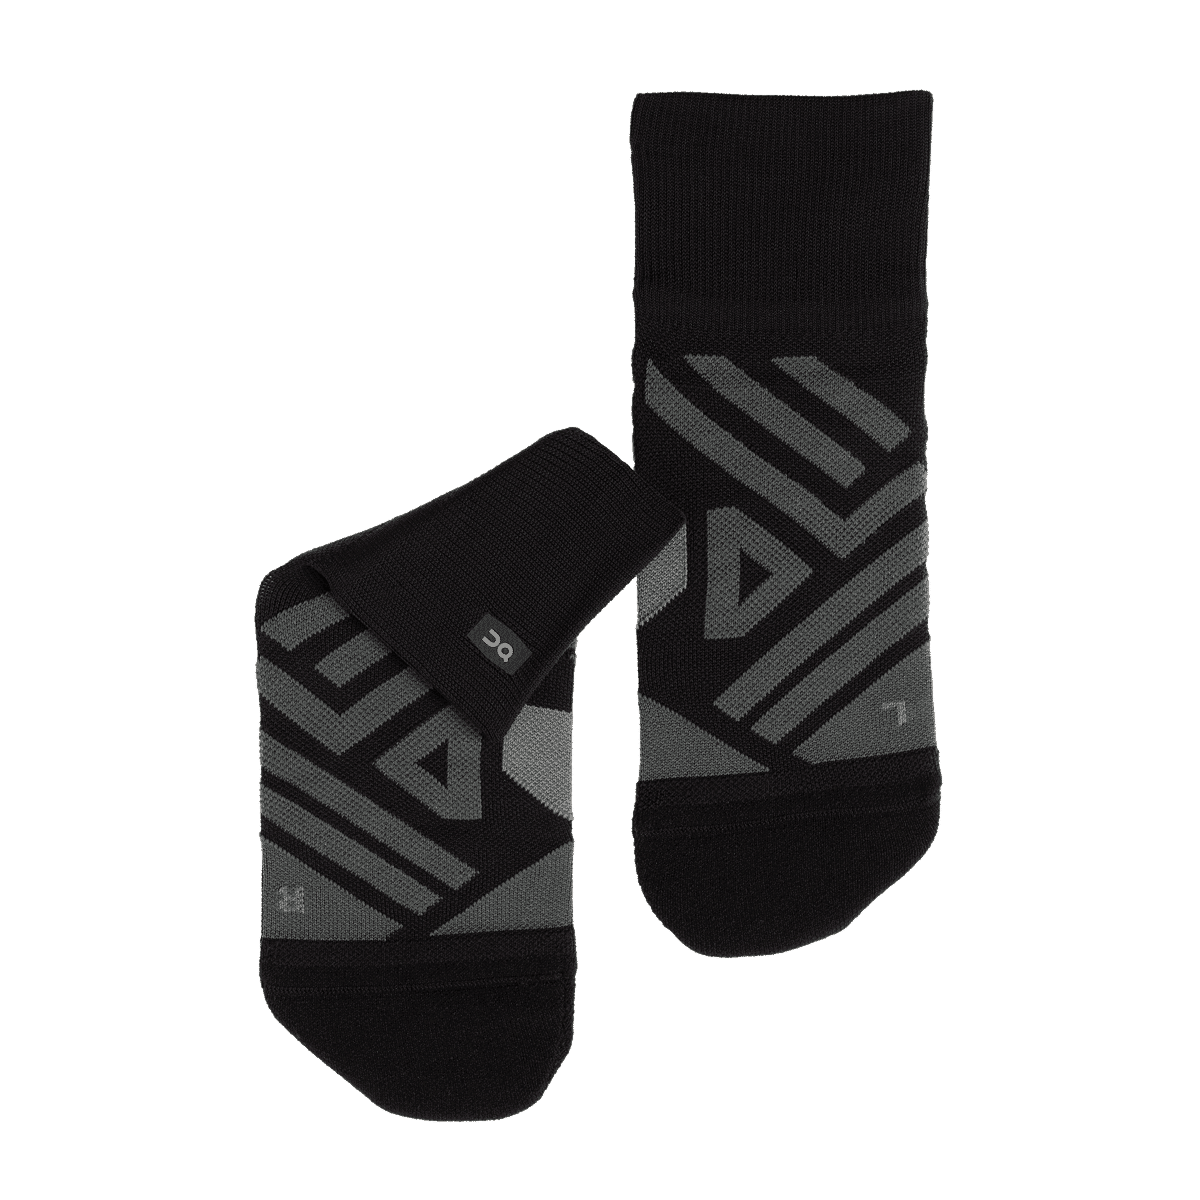 8b05f1c19 Men s mid-length running socks